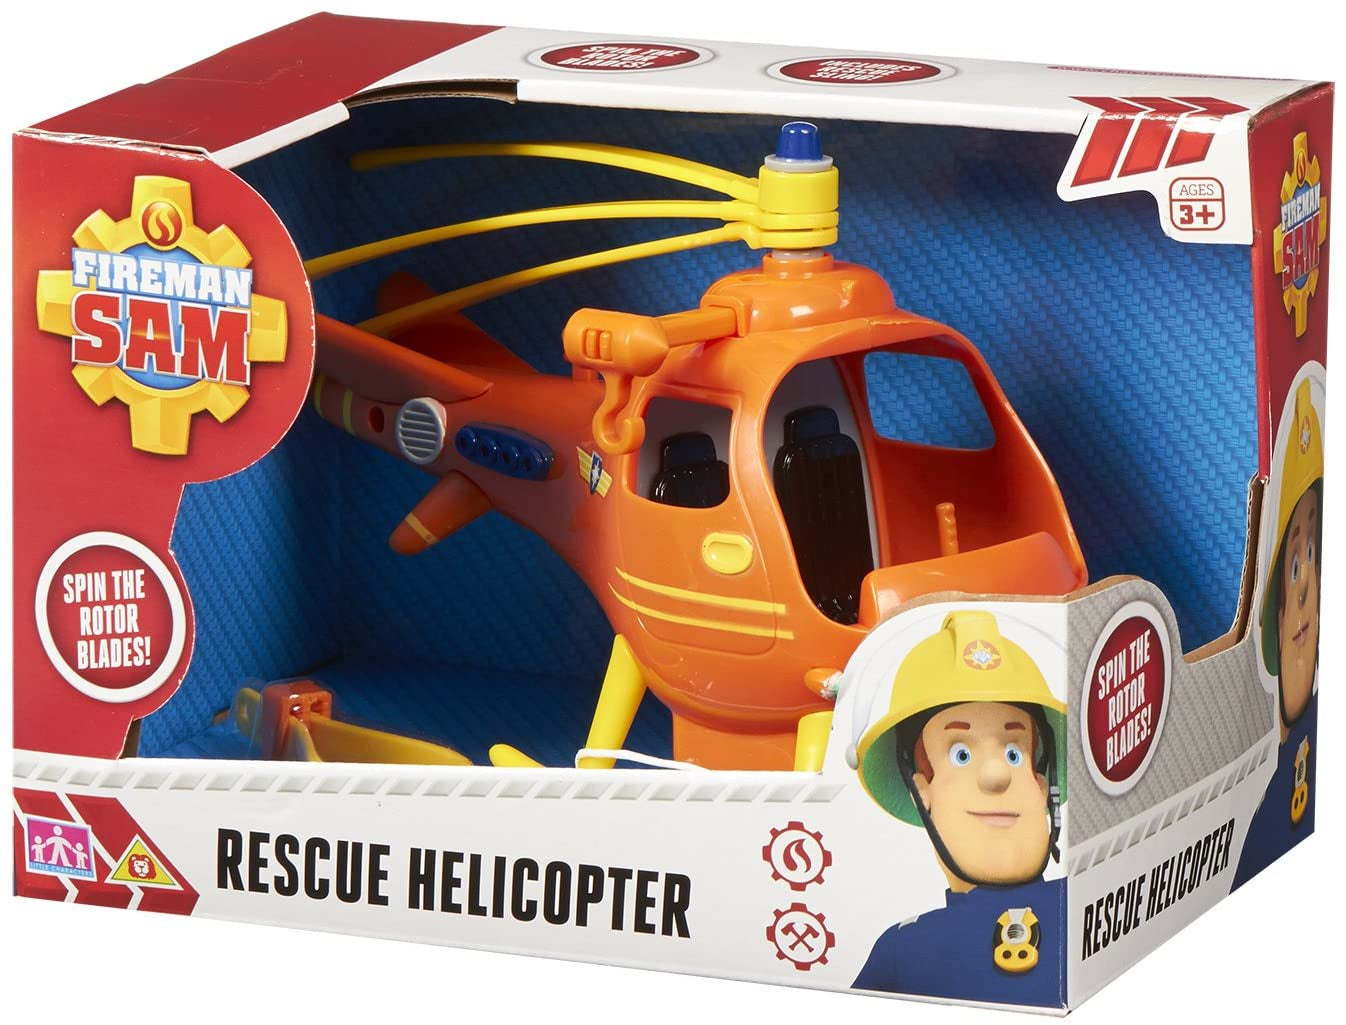 Fireman Sam Wallaby 1 Push Along Vehicle